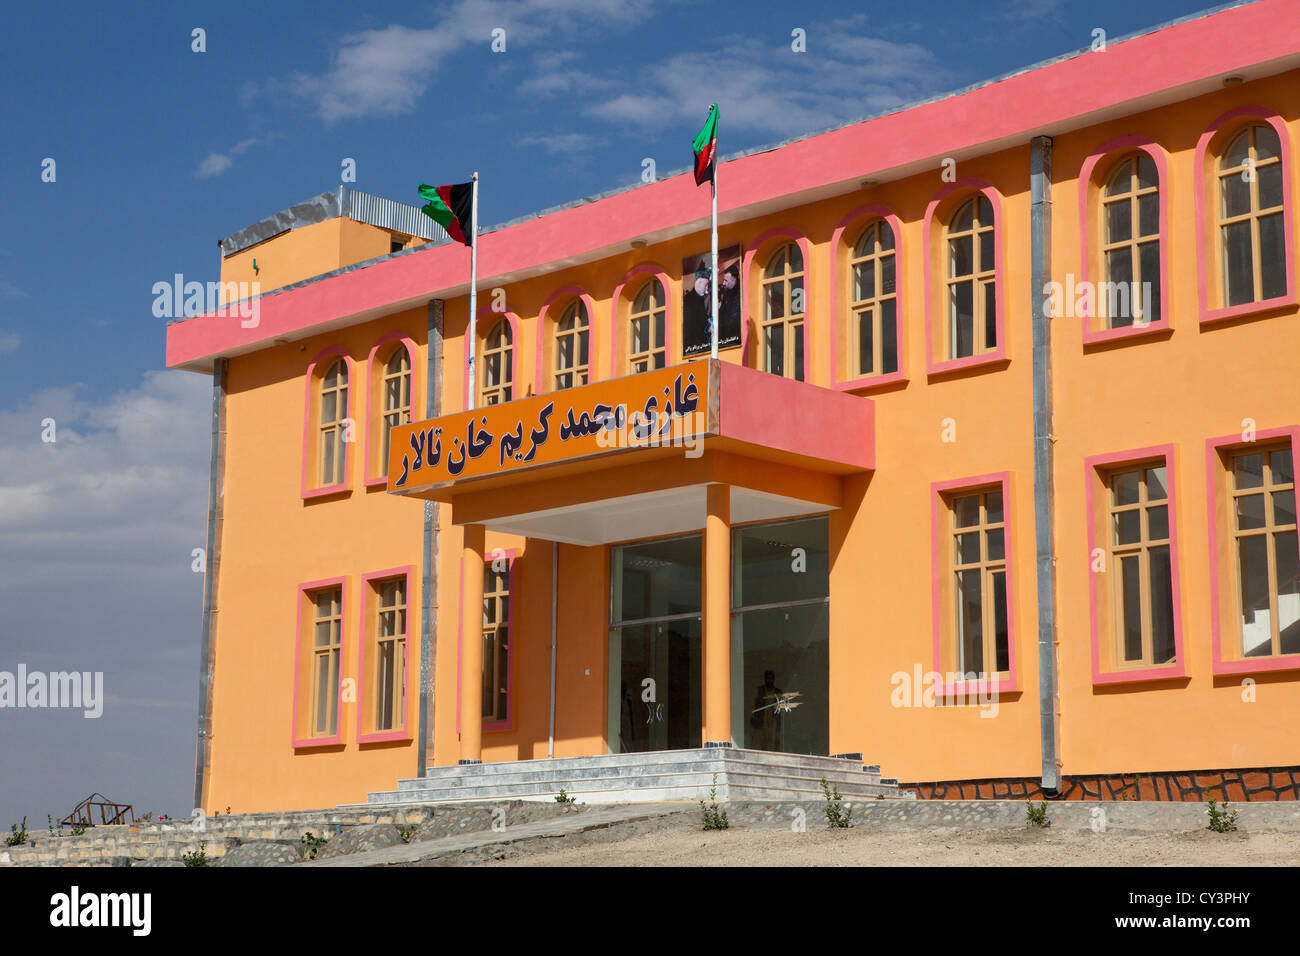 community centre of Maidan, wardak province, afghanistan, bult by the turkish PRT - Stock Image